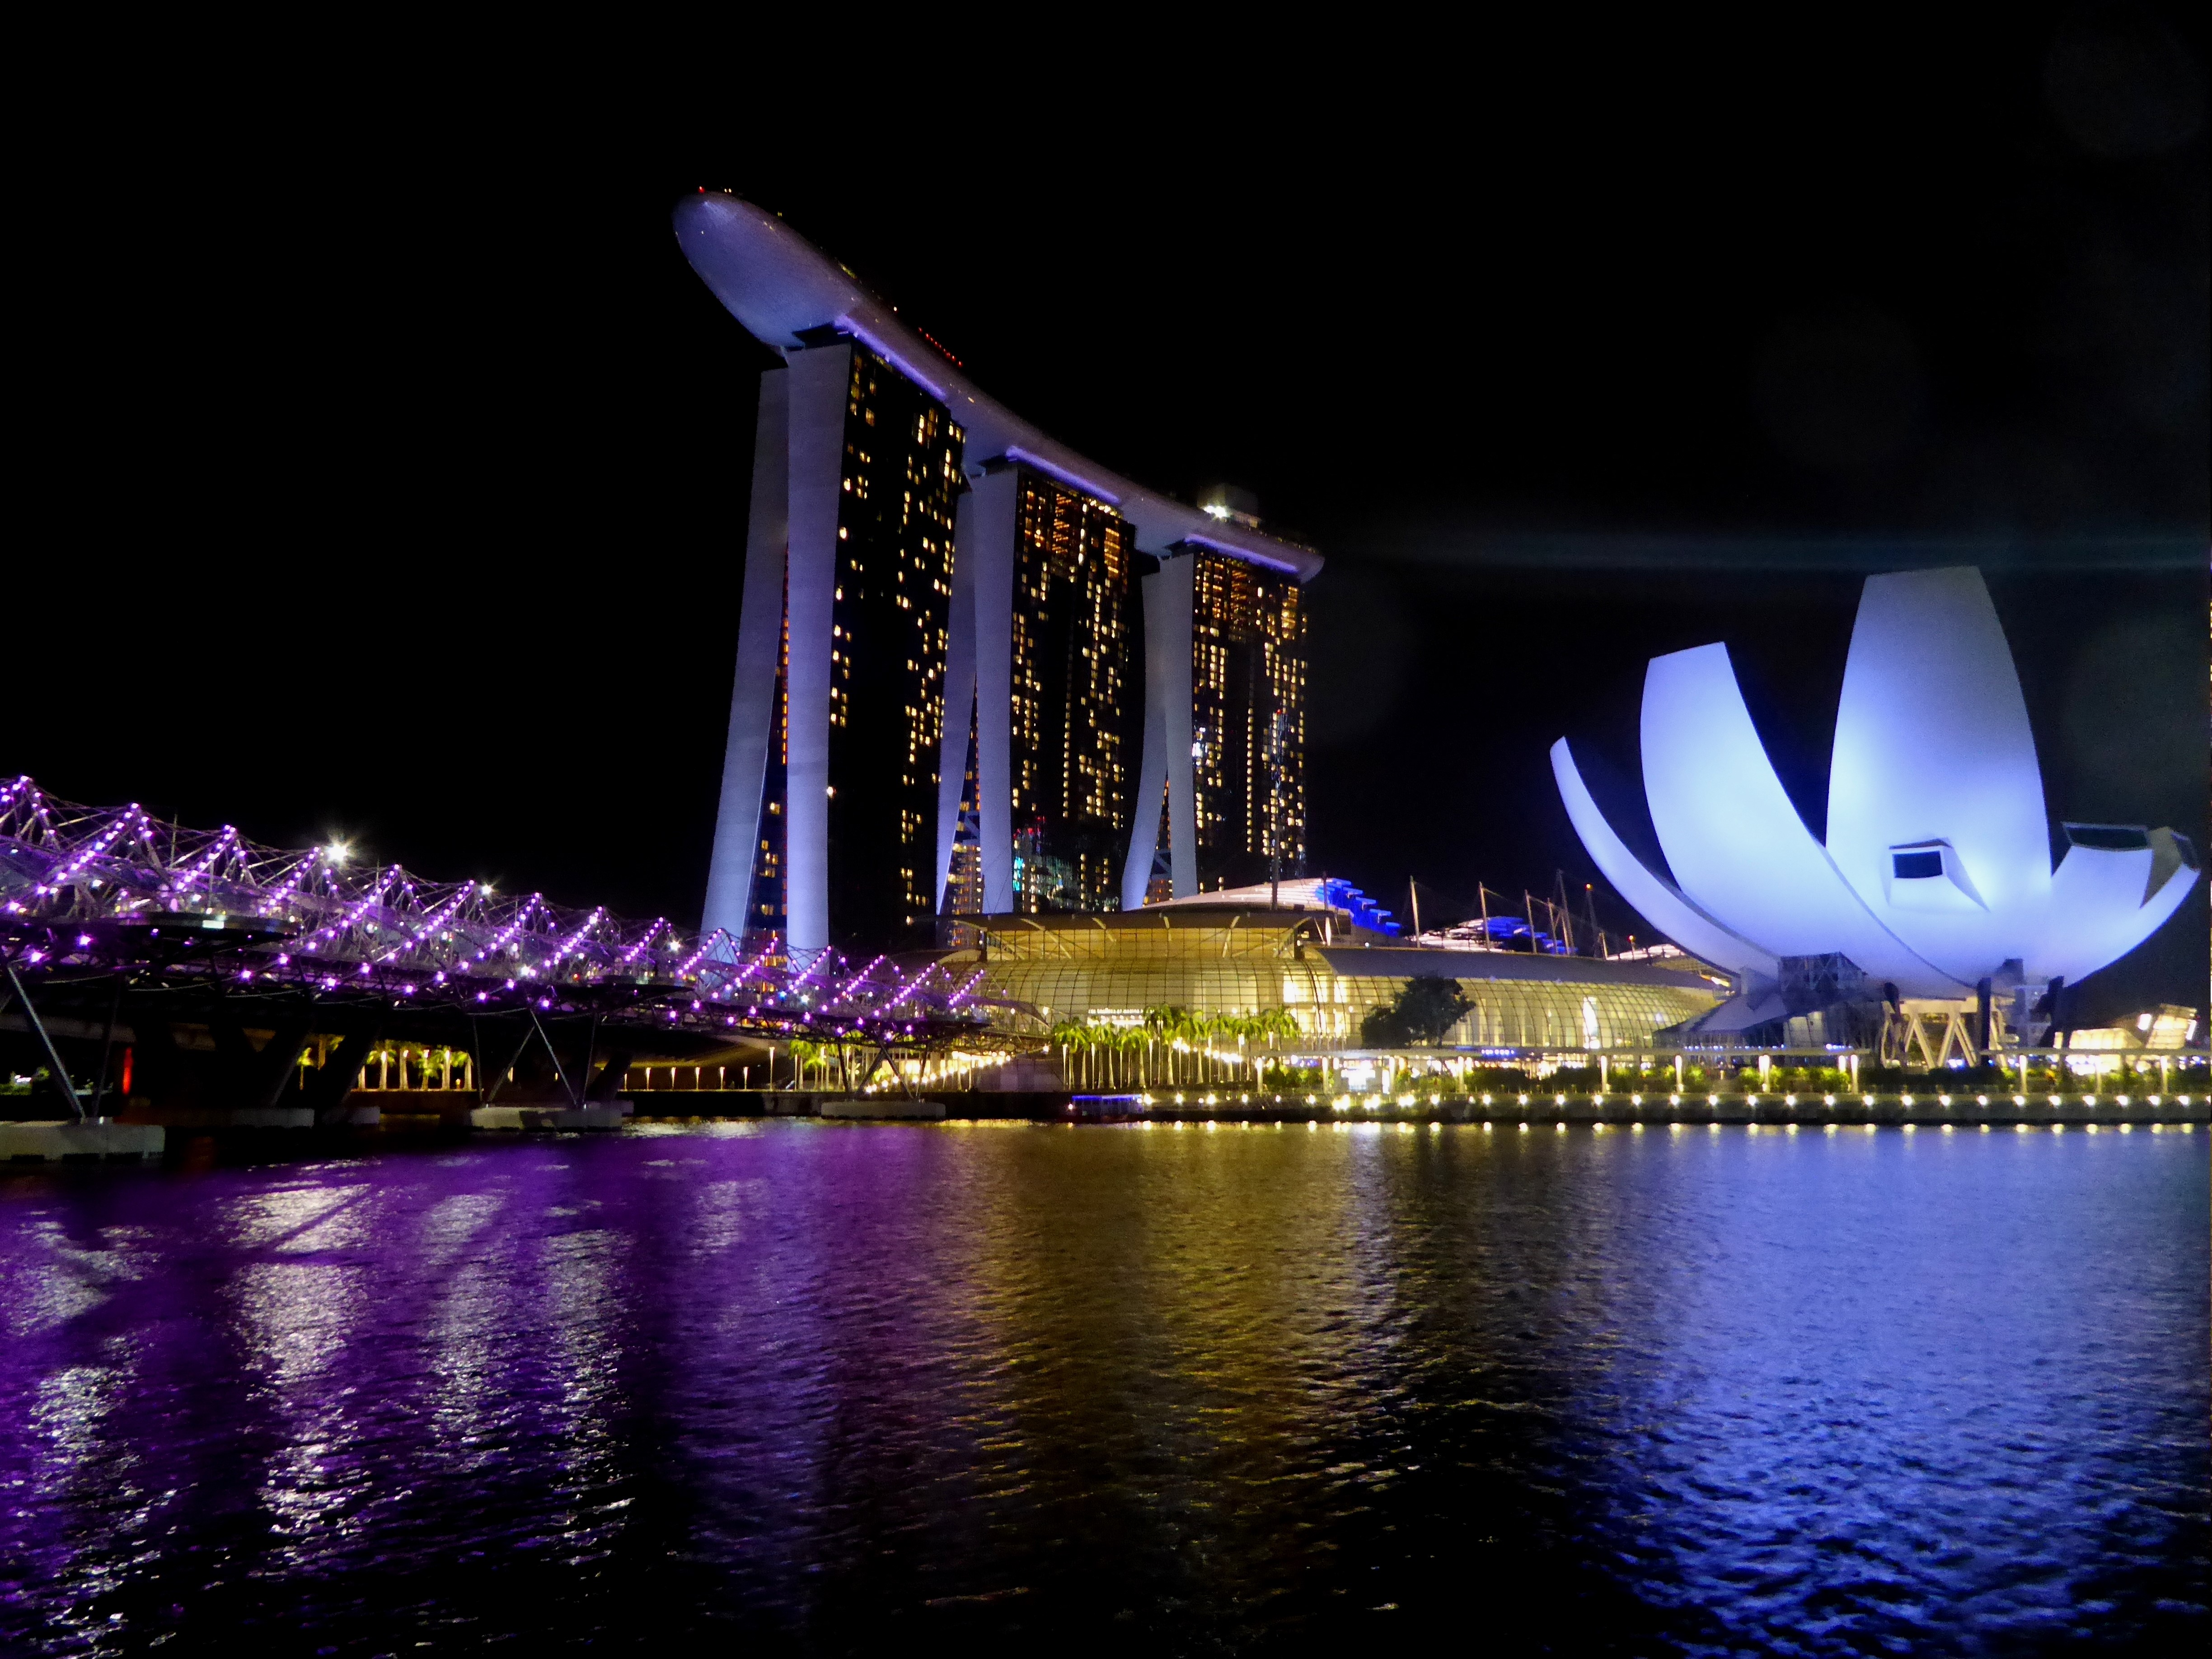 Image of Singapore taken by Thomas Robb during his visit - Image of Singapore taken by Thomas Robb during his visit